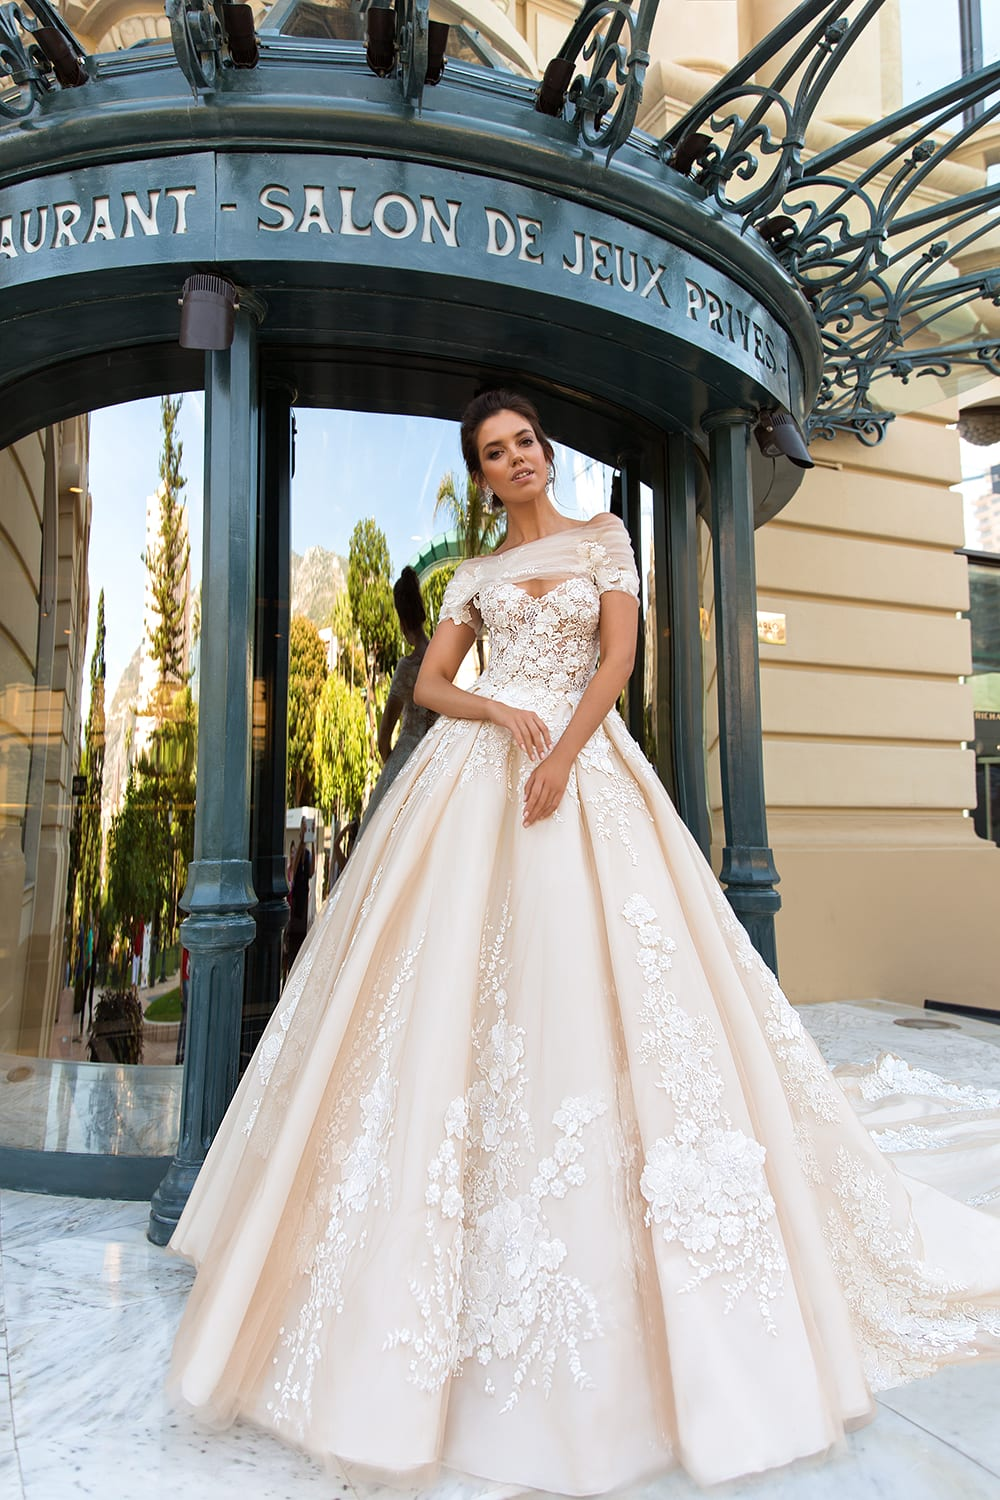 Wedding Outfit Gown For Women